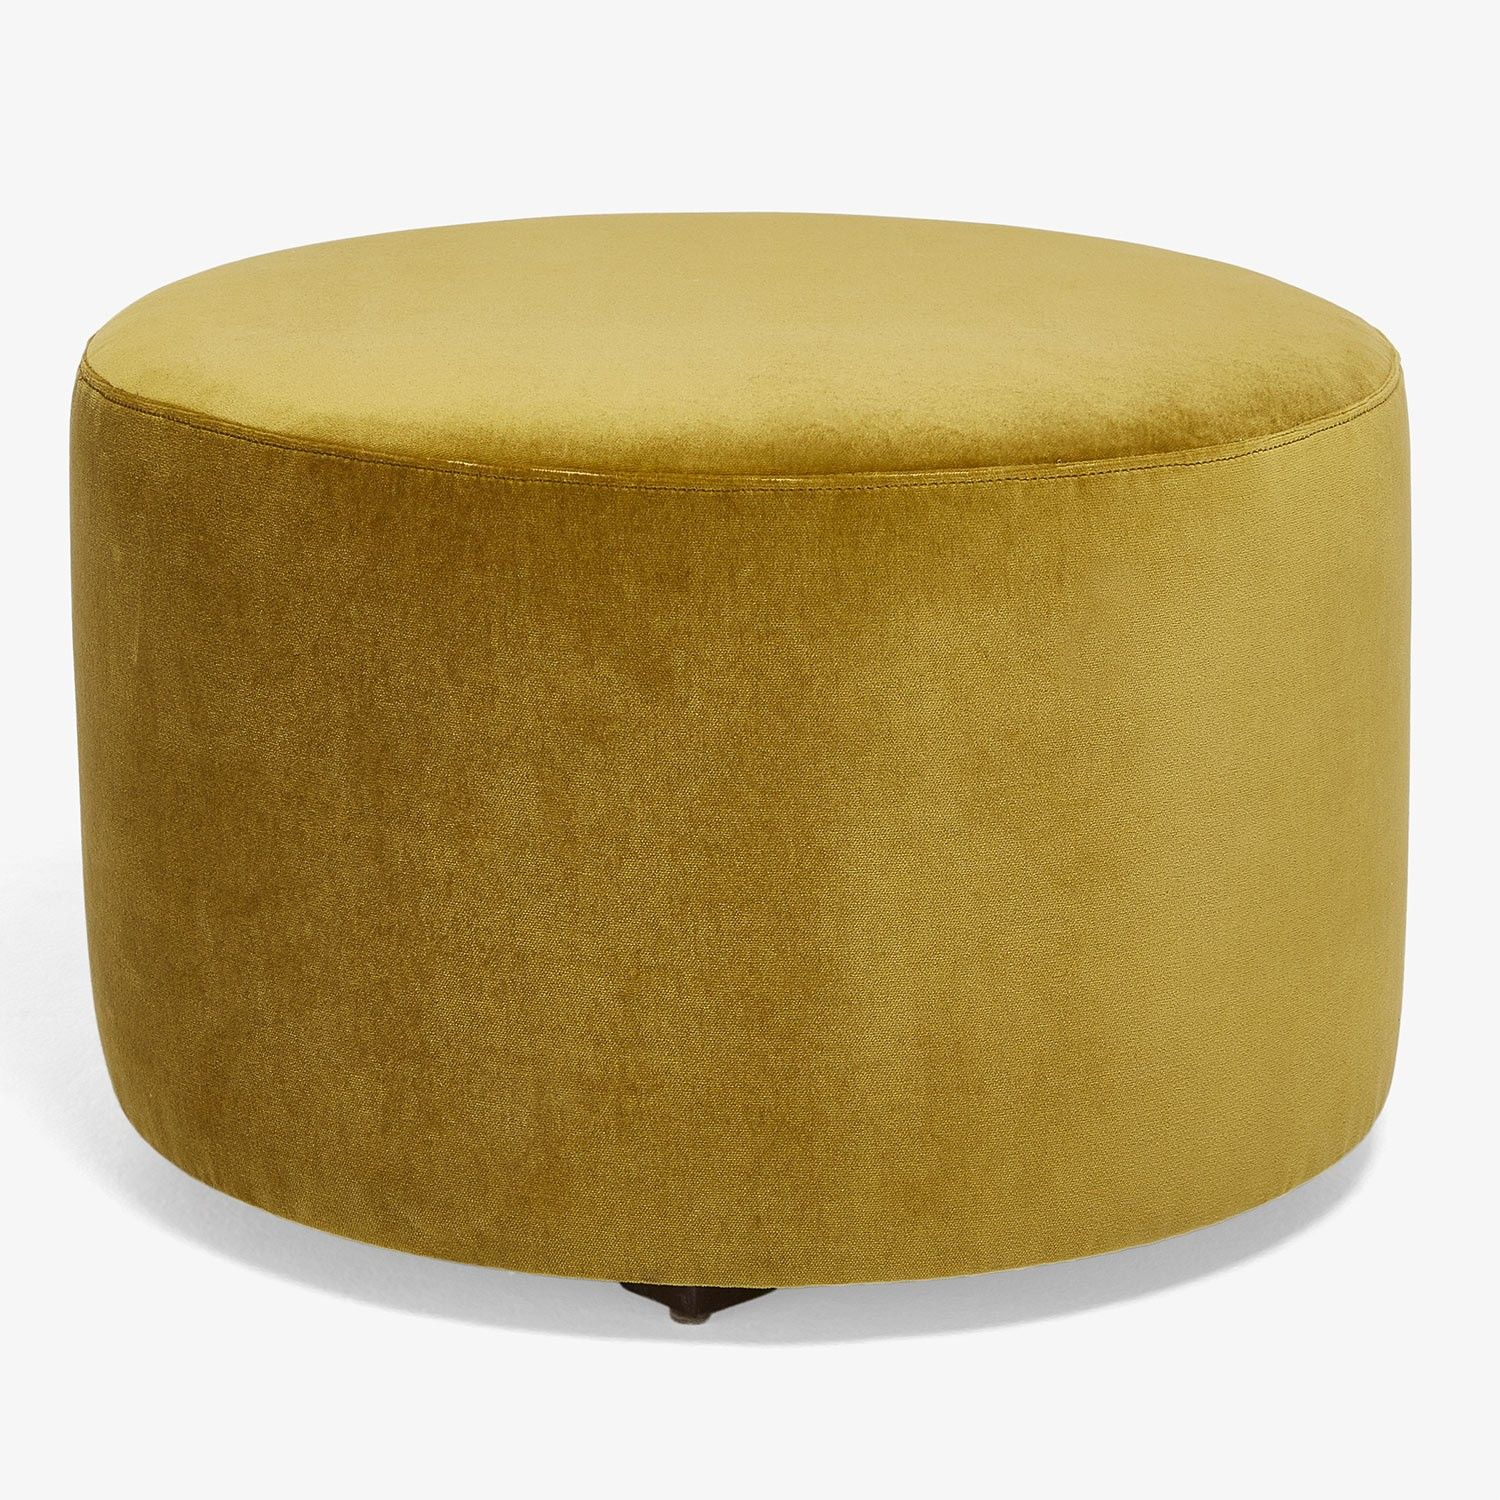 The Highline Mustard Round Ottoman Pairs A Crisp Linear Form With